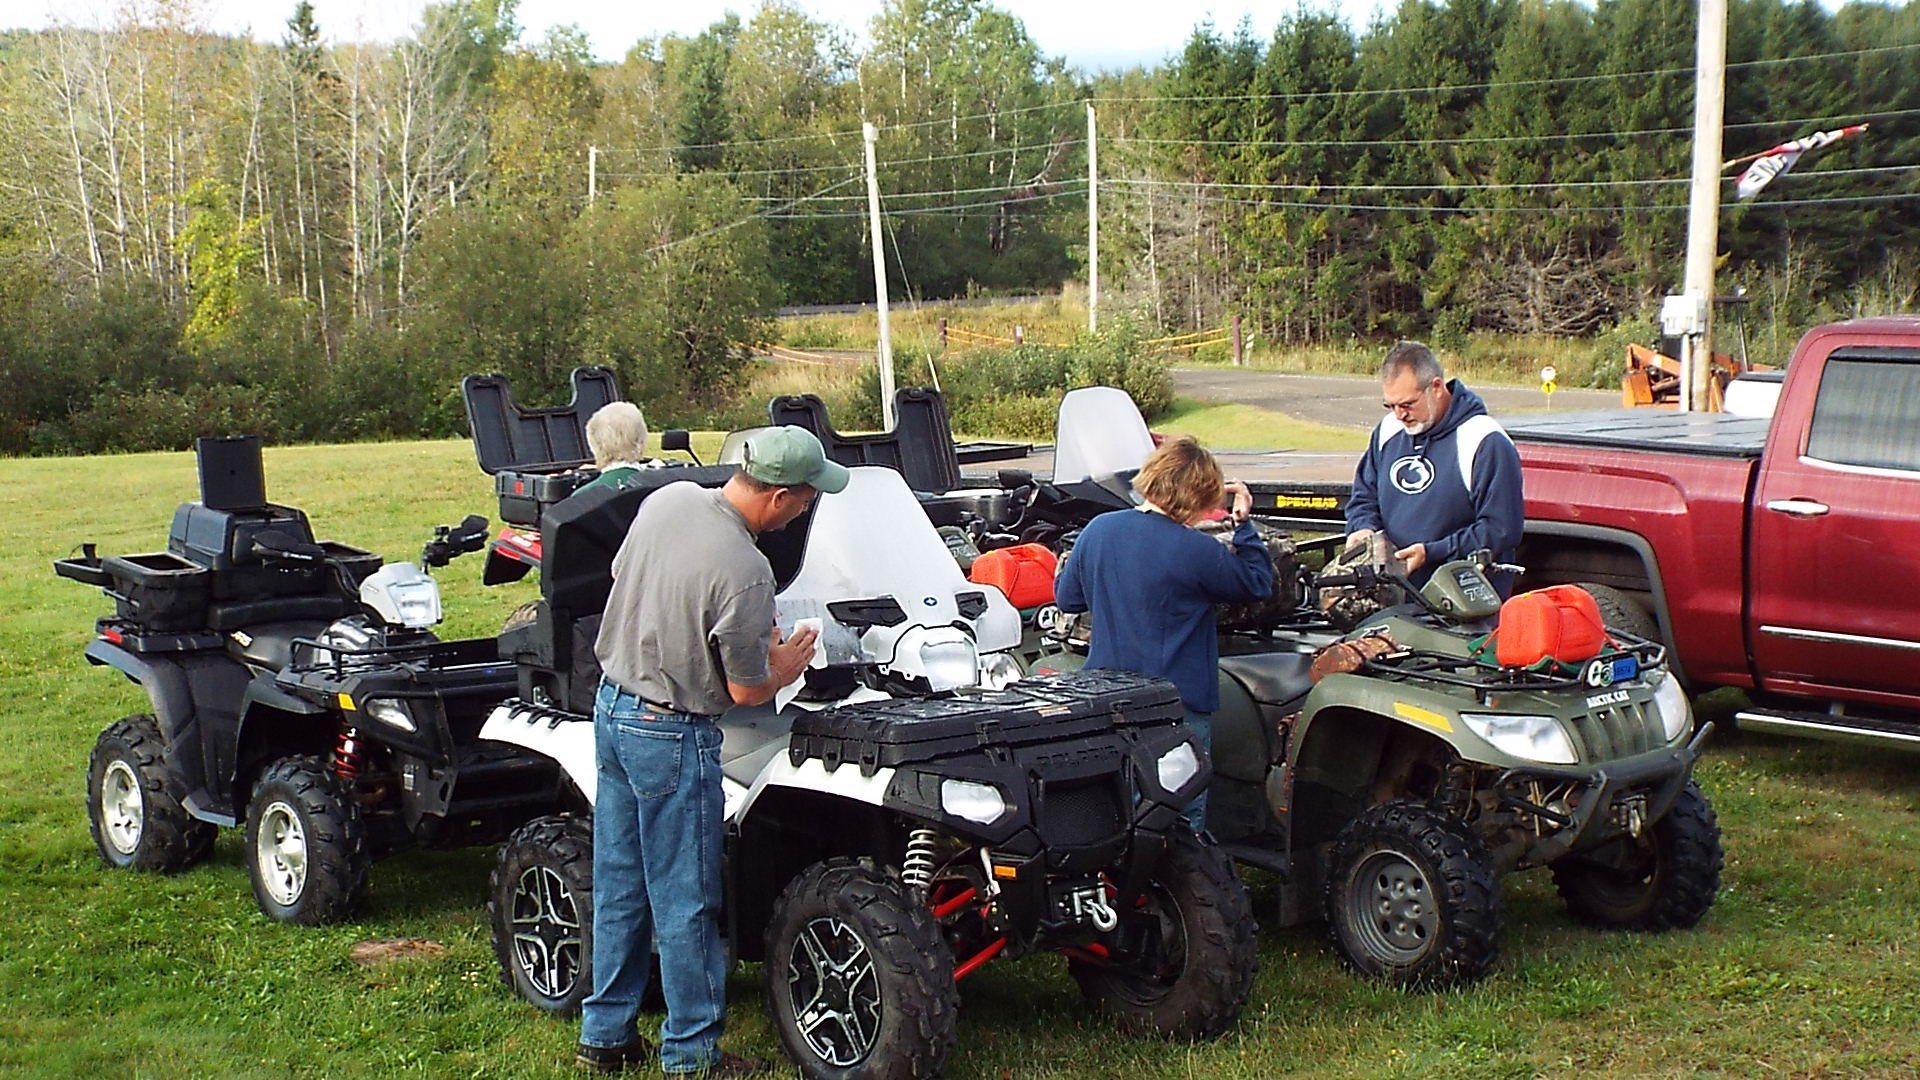 ATV Group getting ready for a day of riding 1300 miles of trails